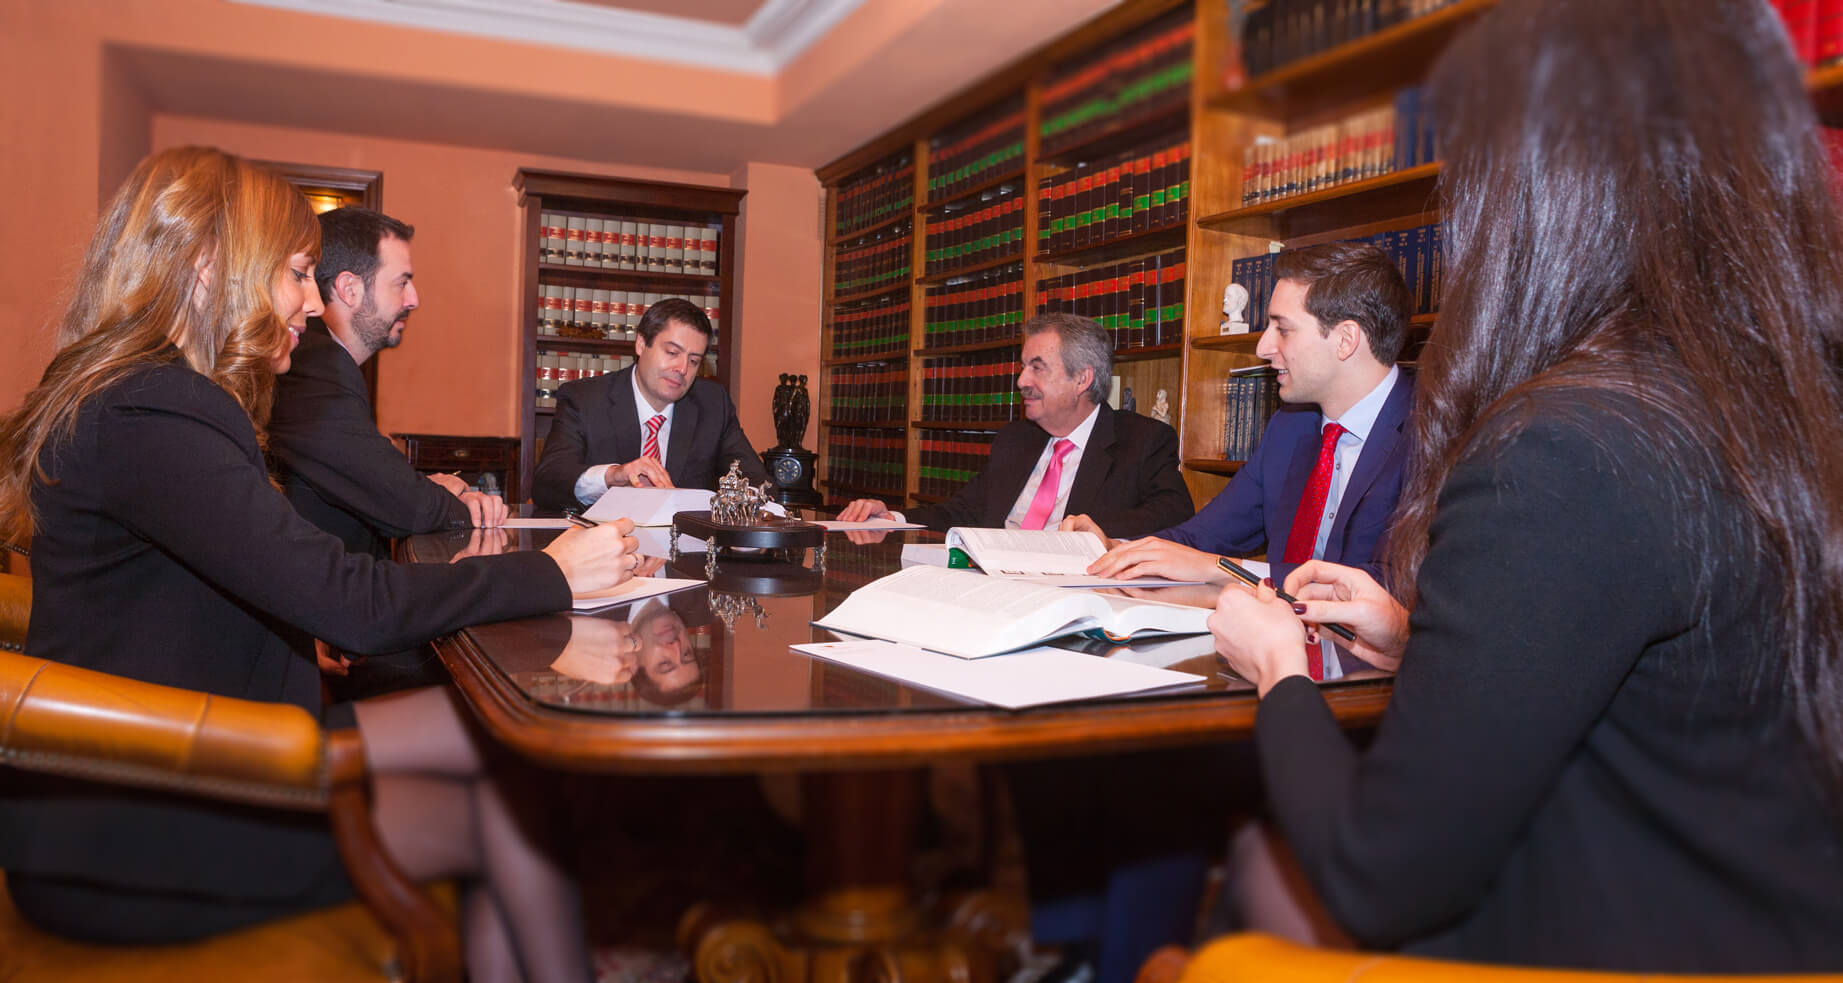 Gracia Carabantes Law Firm in Spain